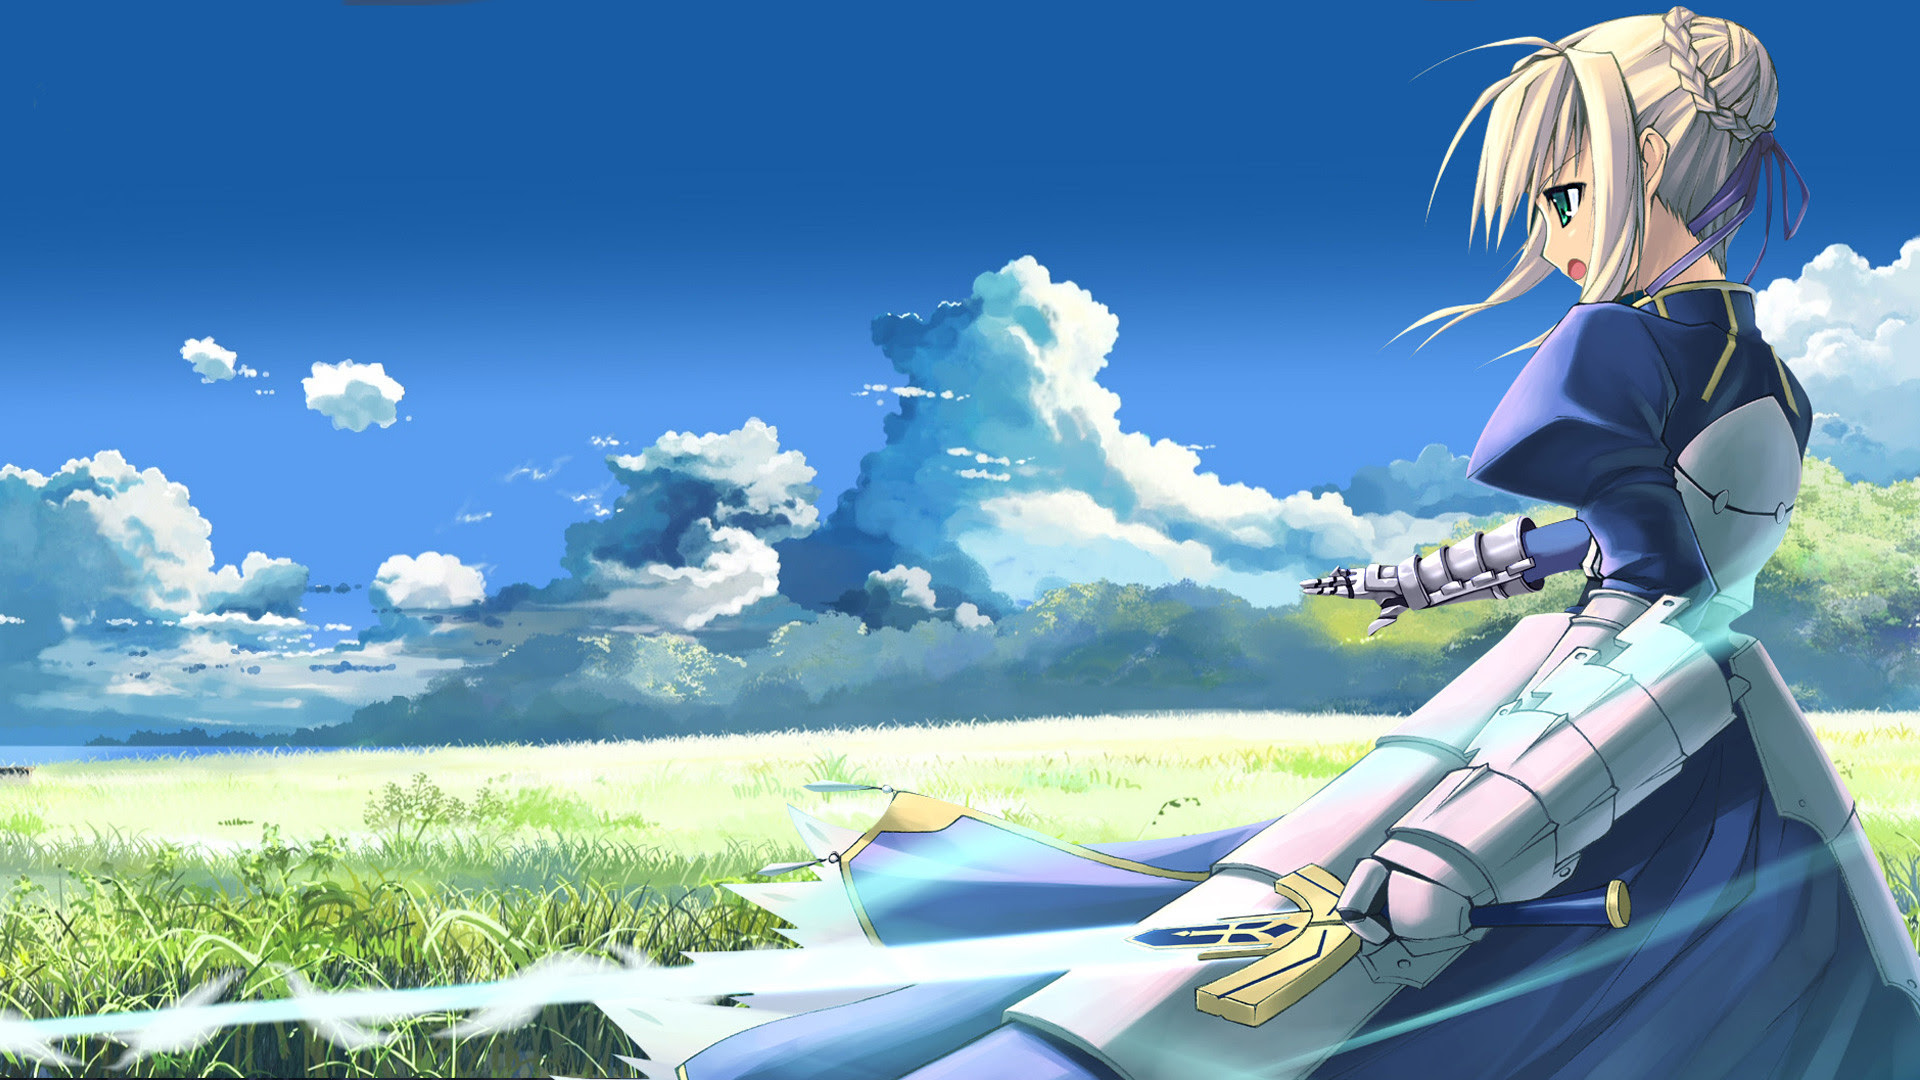 Anime Wallpapers 1920x1080 (81+ images)